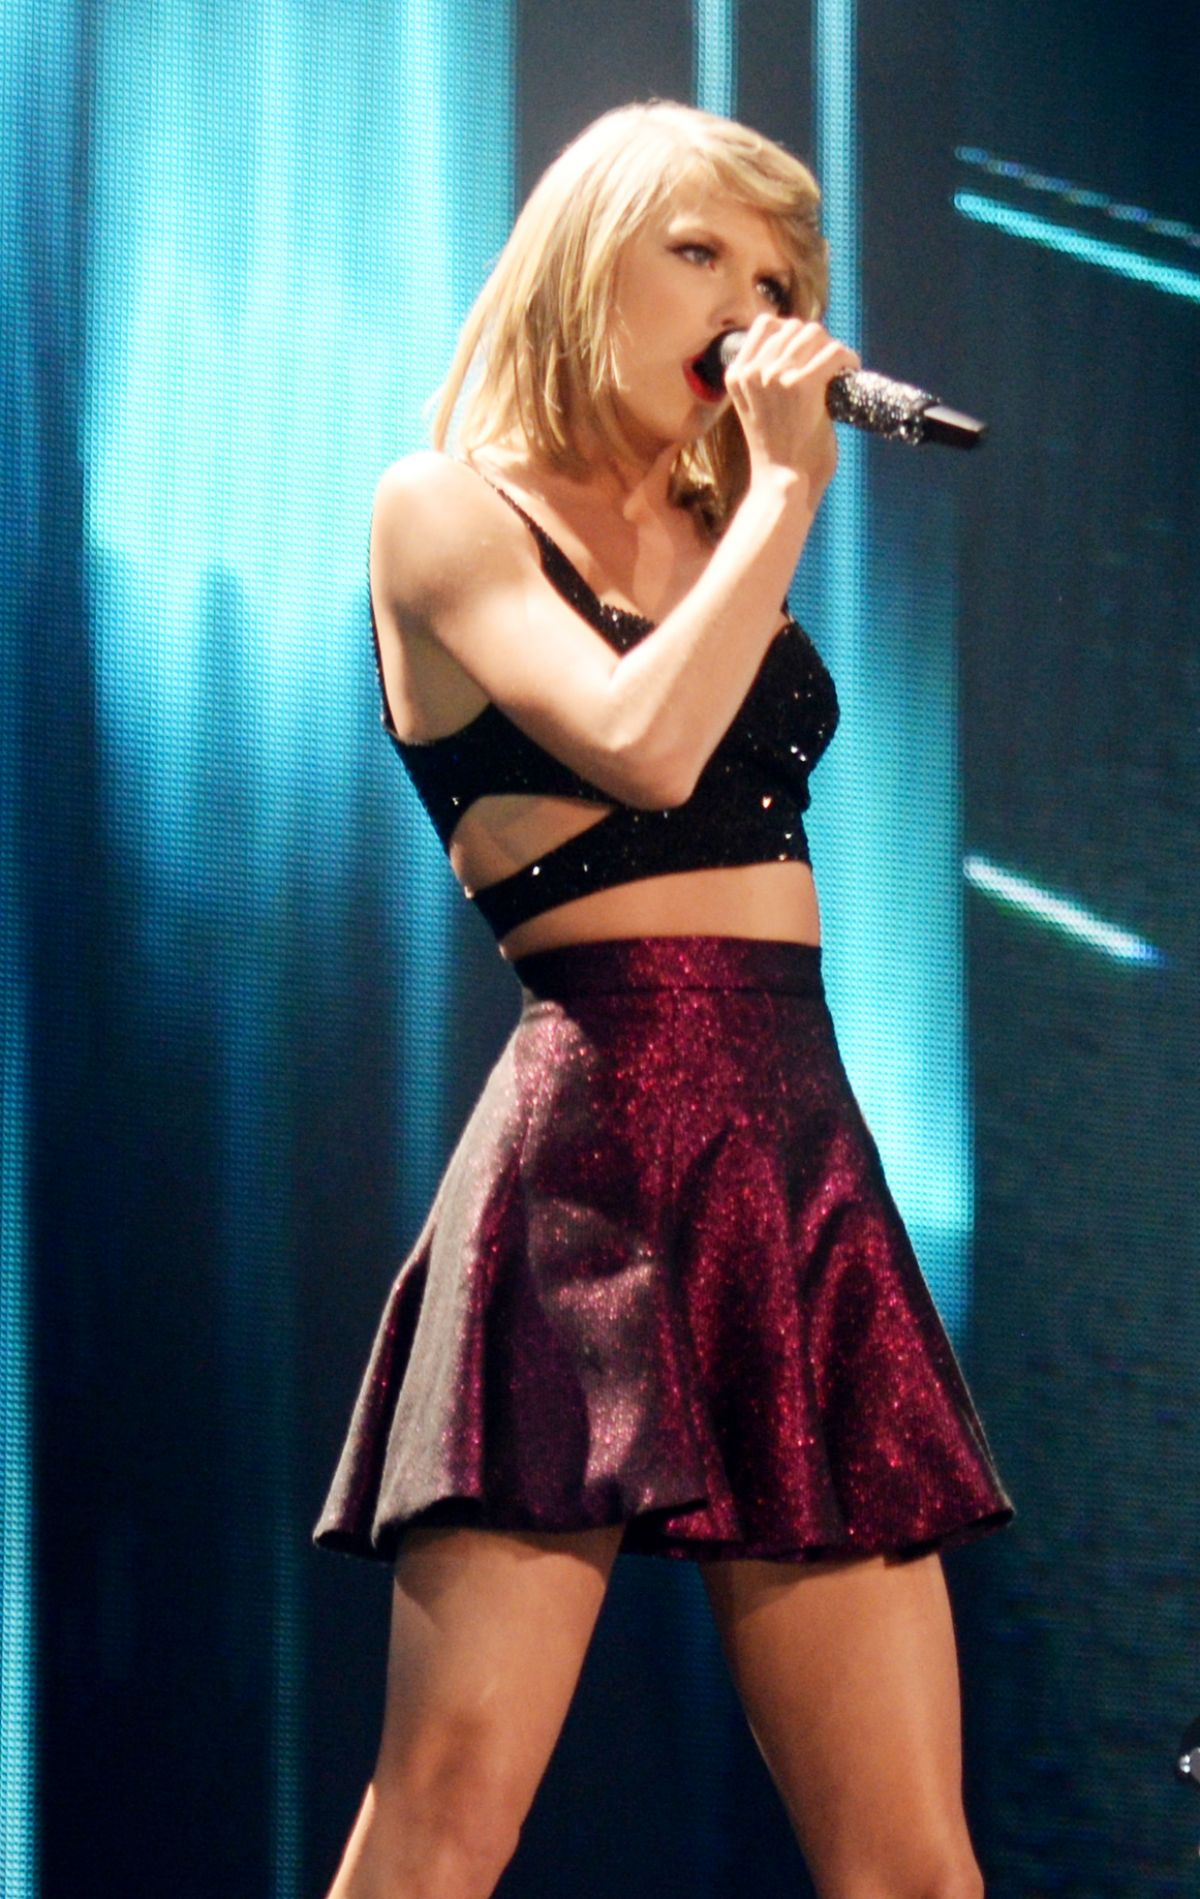 TAYLOR SWIFT at 1989 World Tour at The Centurylink Center in Bossier City